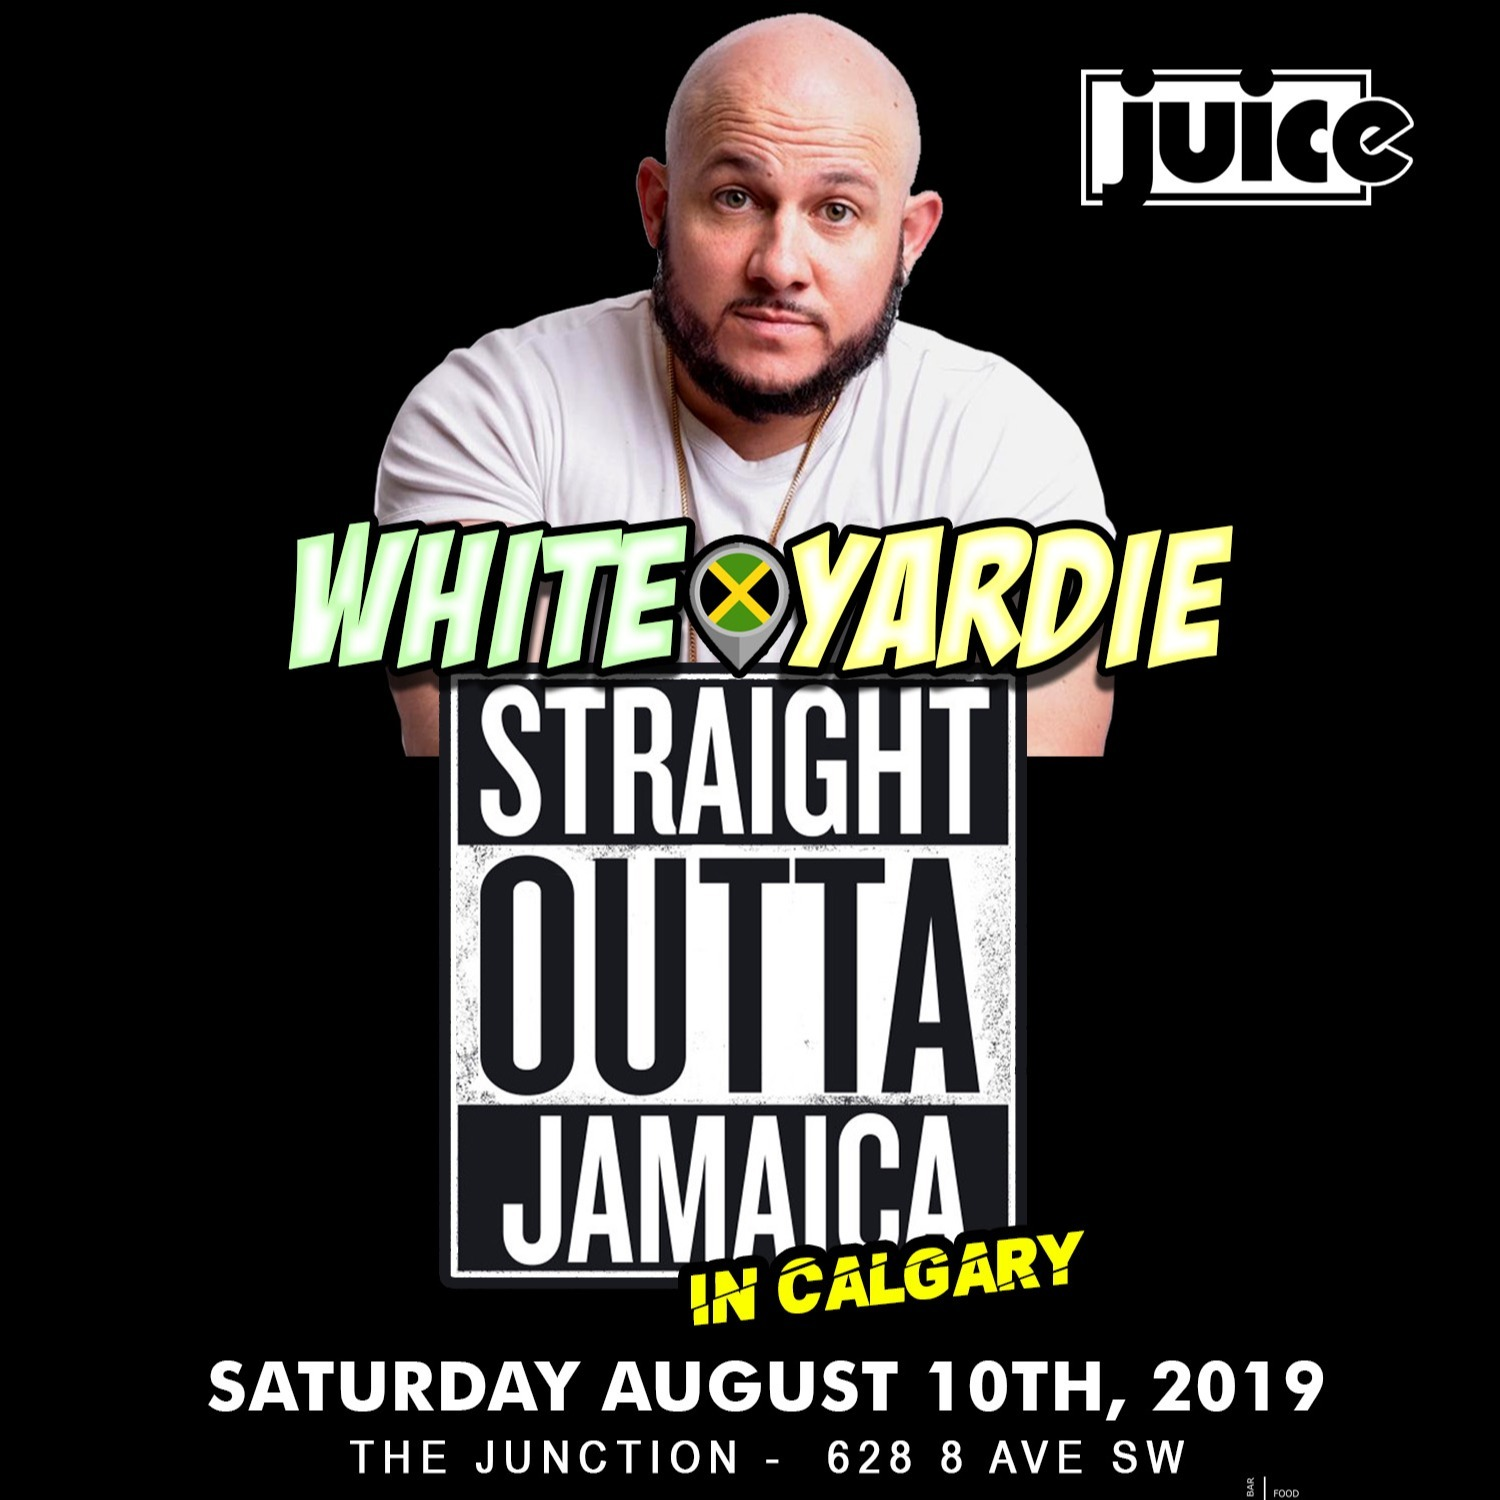 Juice Comedy presents WHITE YARDIE'S 'Straight Outta Jamaica' - CALGARY